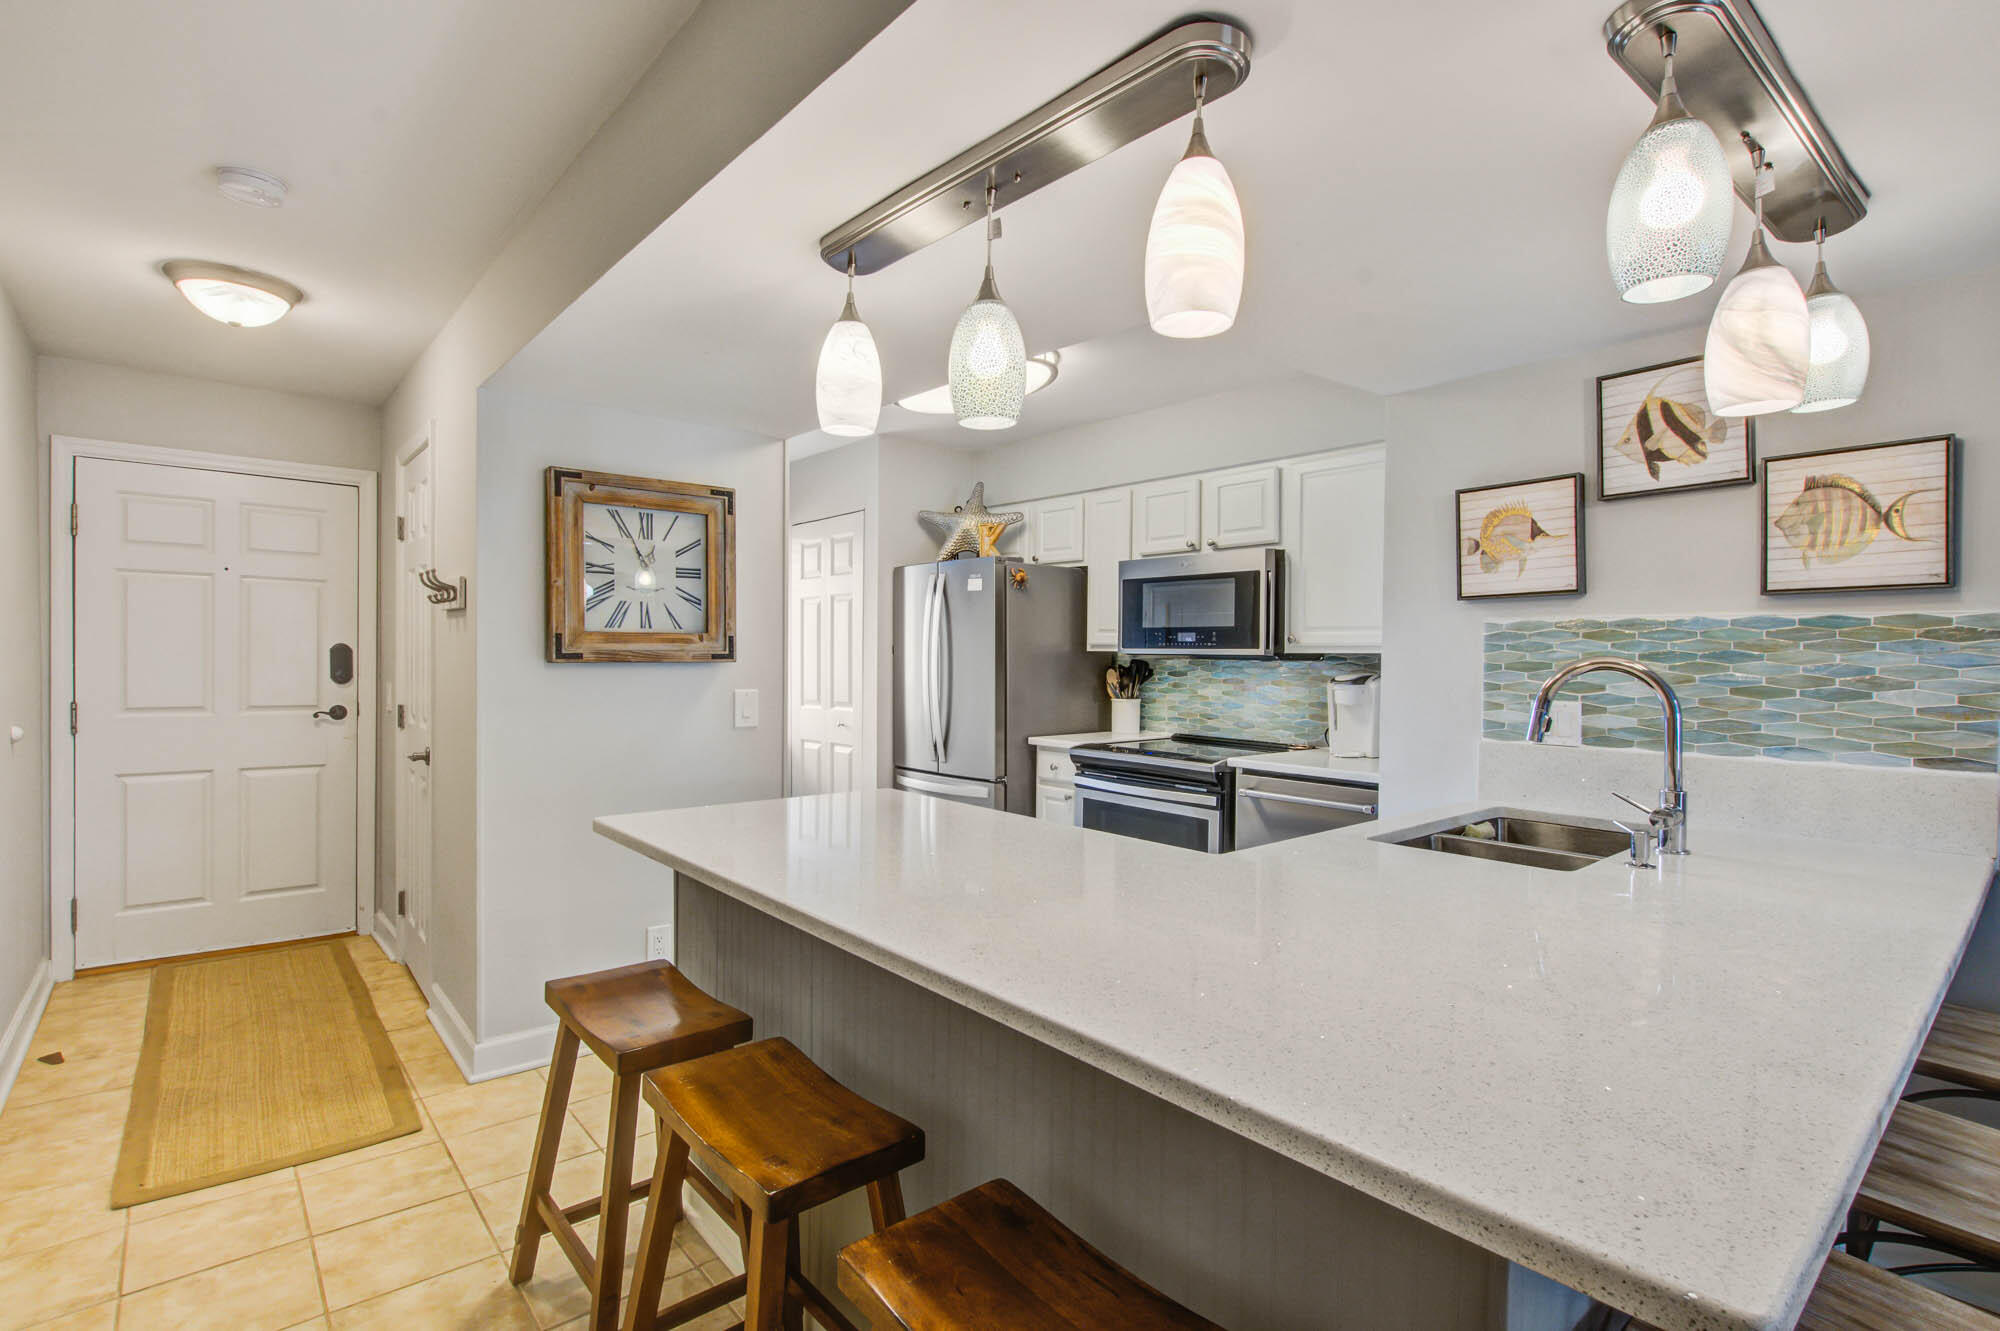 Mariners Cay Homes For Sale - 56 Mariners Cay, Folly Beach, SC - 18